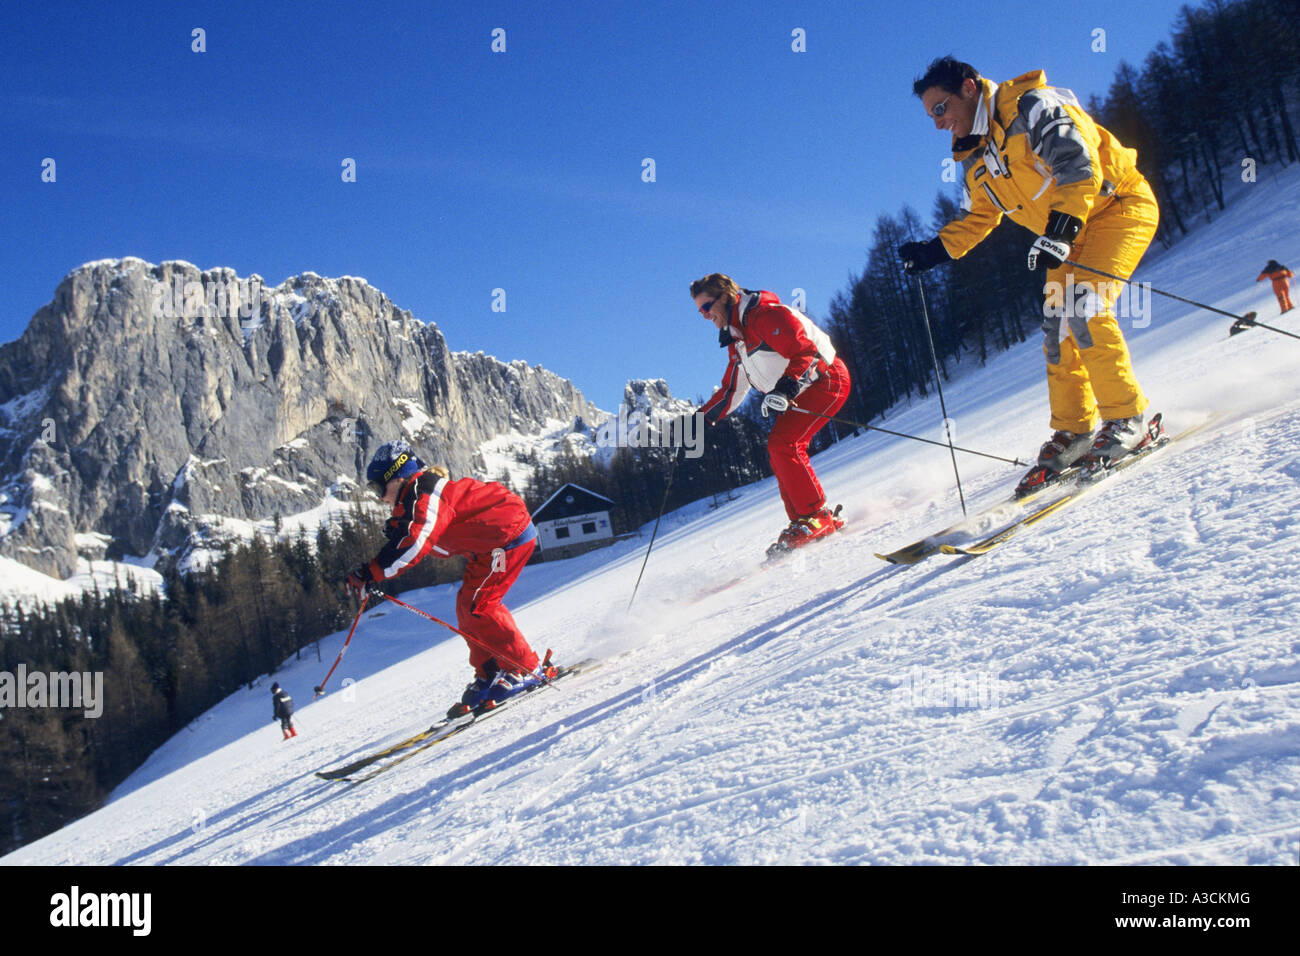 three skier running downhill, Austria, Alps - Stock Image